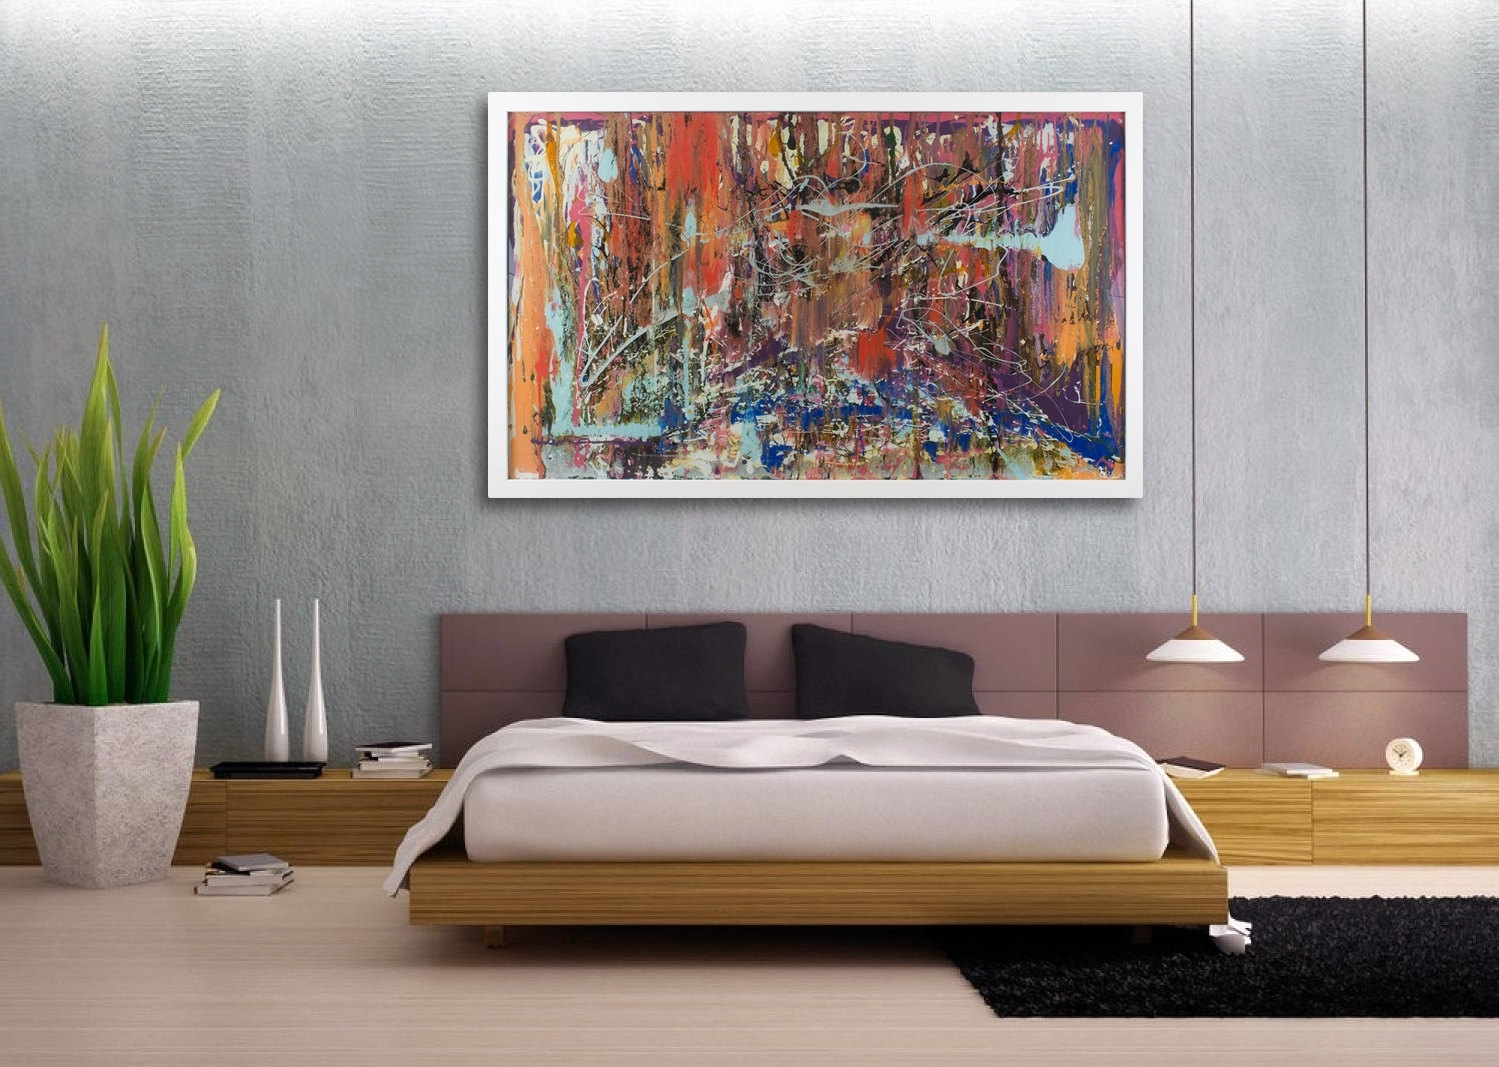 Innovative Way Modern Wall Decor Room — Joanne Russo Homesjoanne Within Newest Large Framed Abstract Wall Art (View 10 of 20)